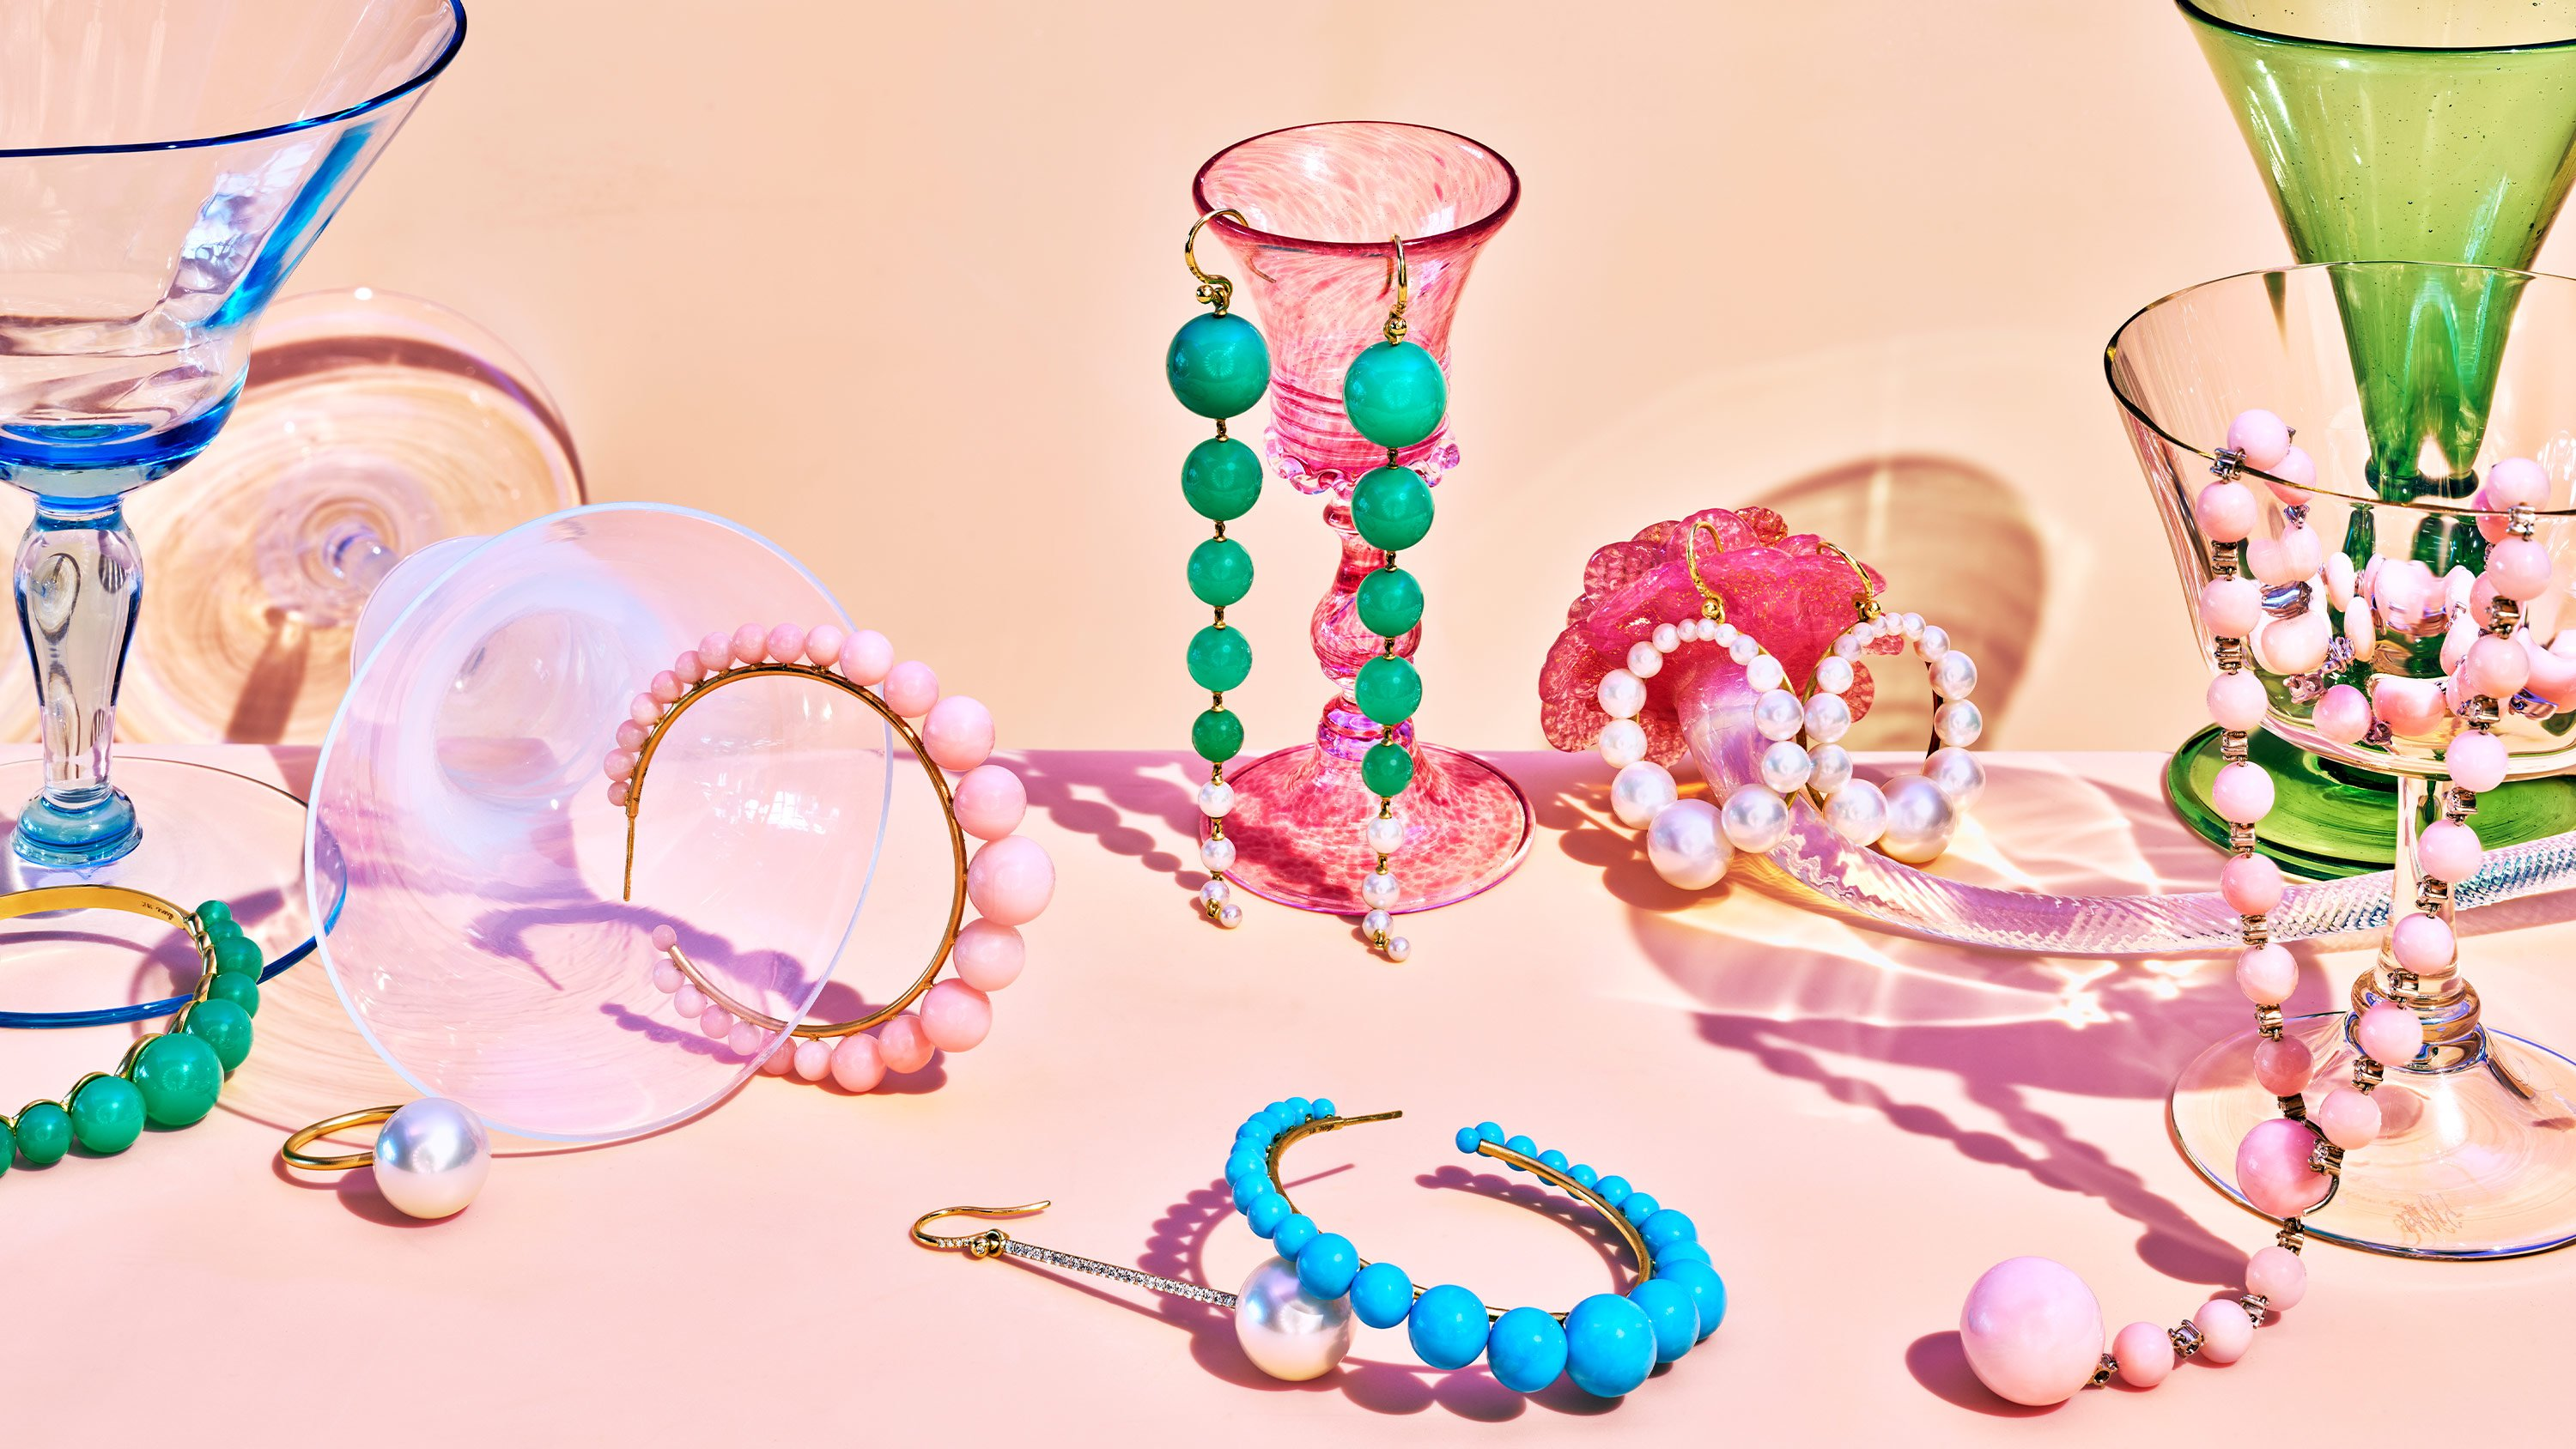 Irene Neuwirth gumball collection spread. Rings, necklaces, headpieces and earrings displayed on colored glasses. Art direction by RoAndCo